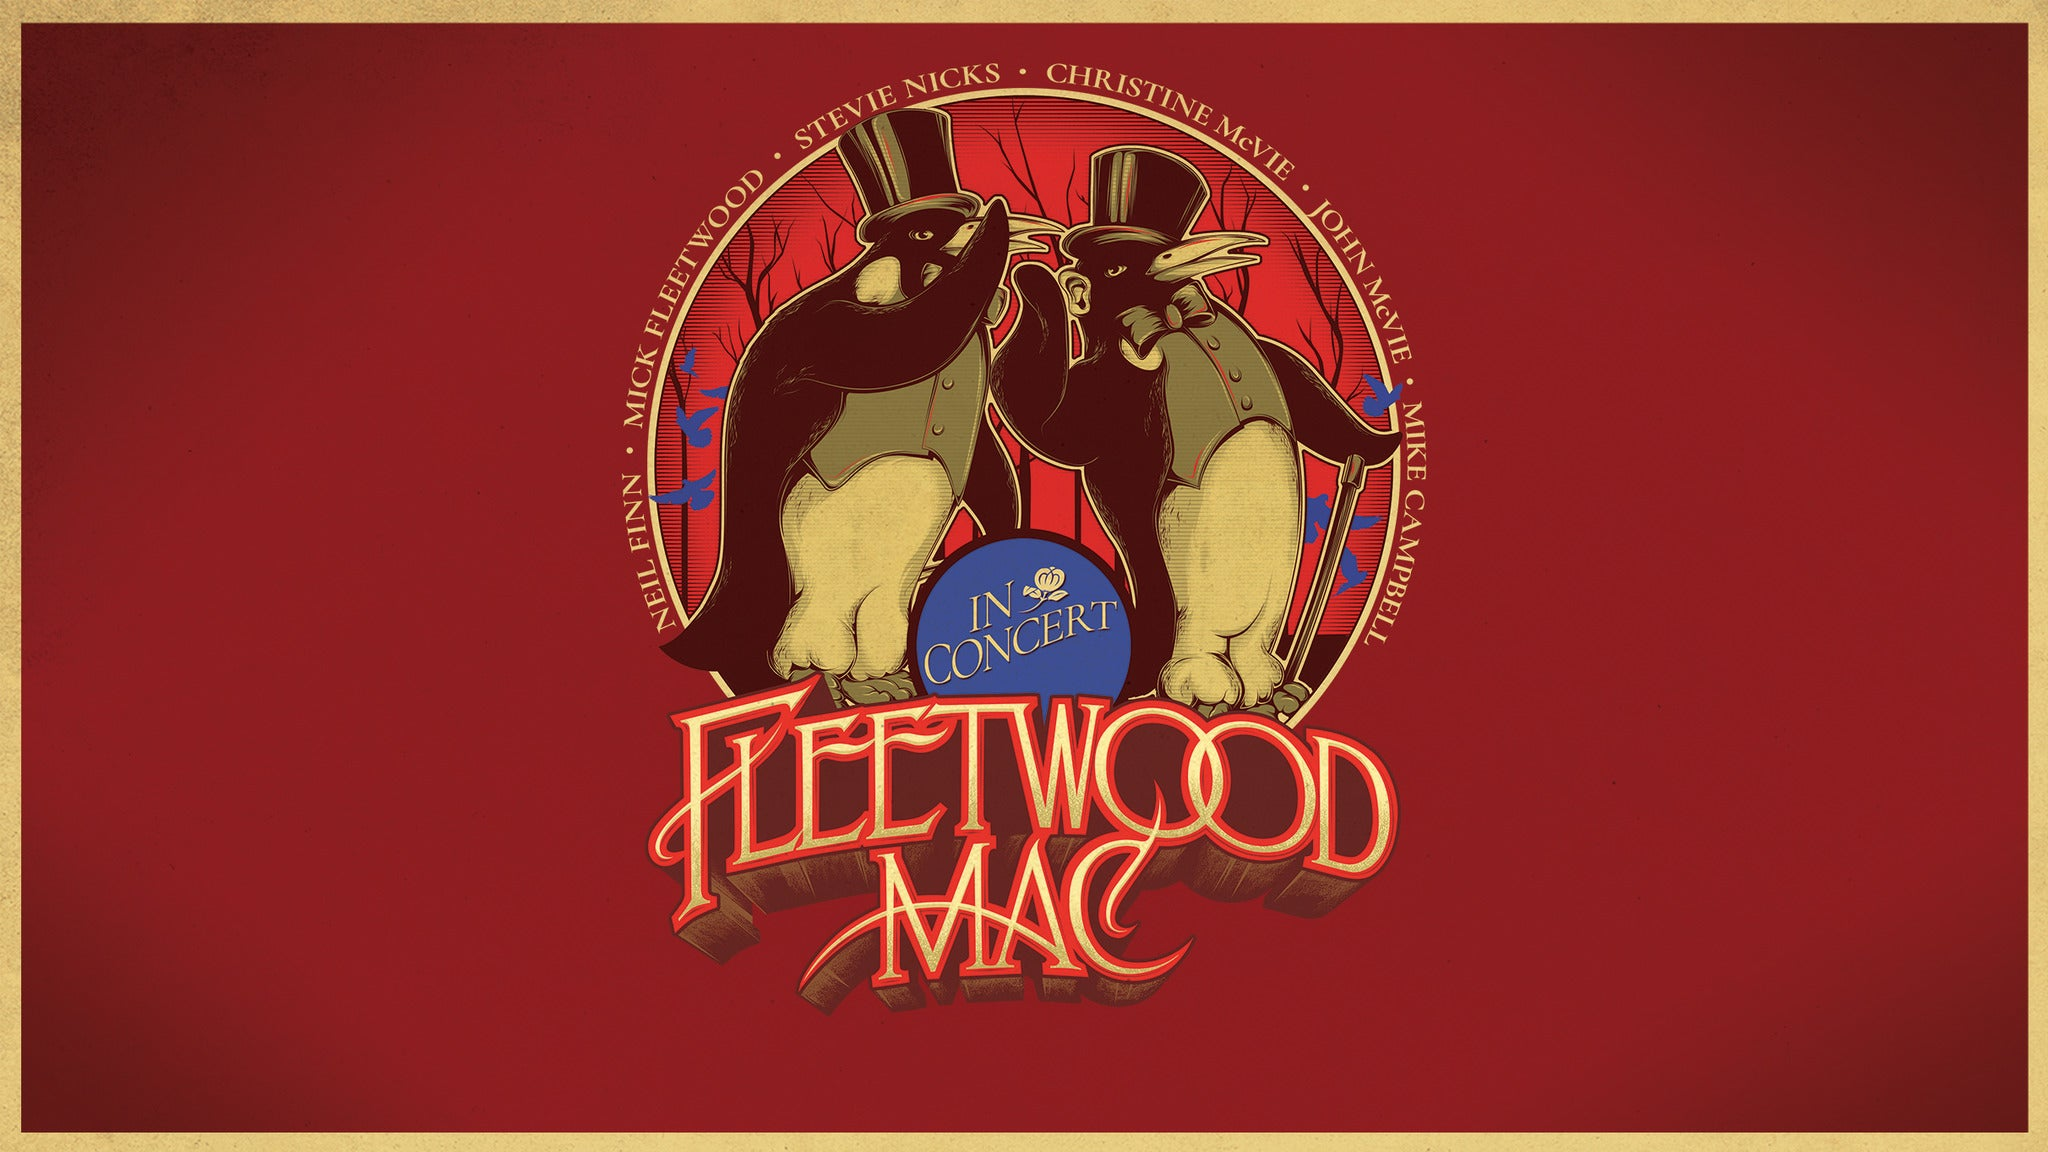 An Evening With Fleetwood Mac at Tacoma Dome